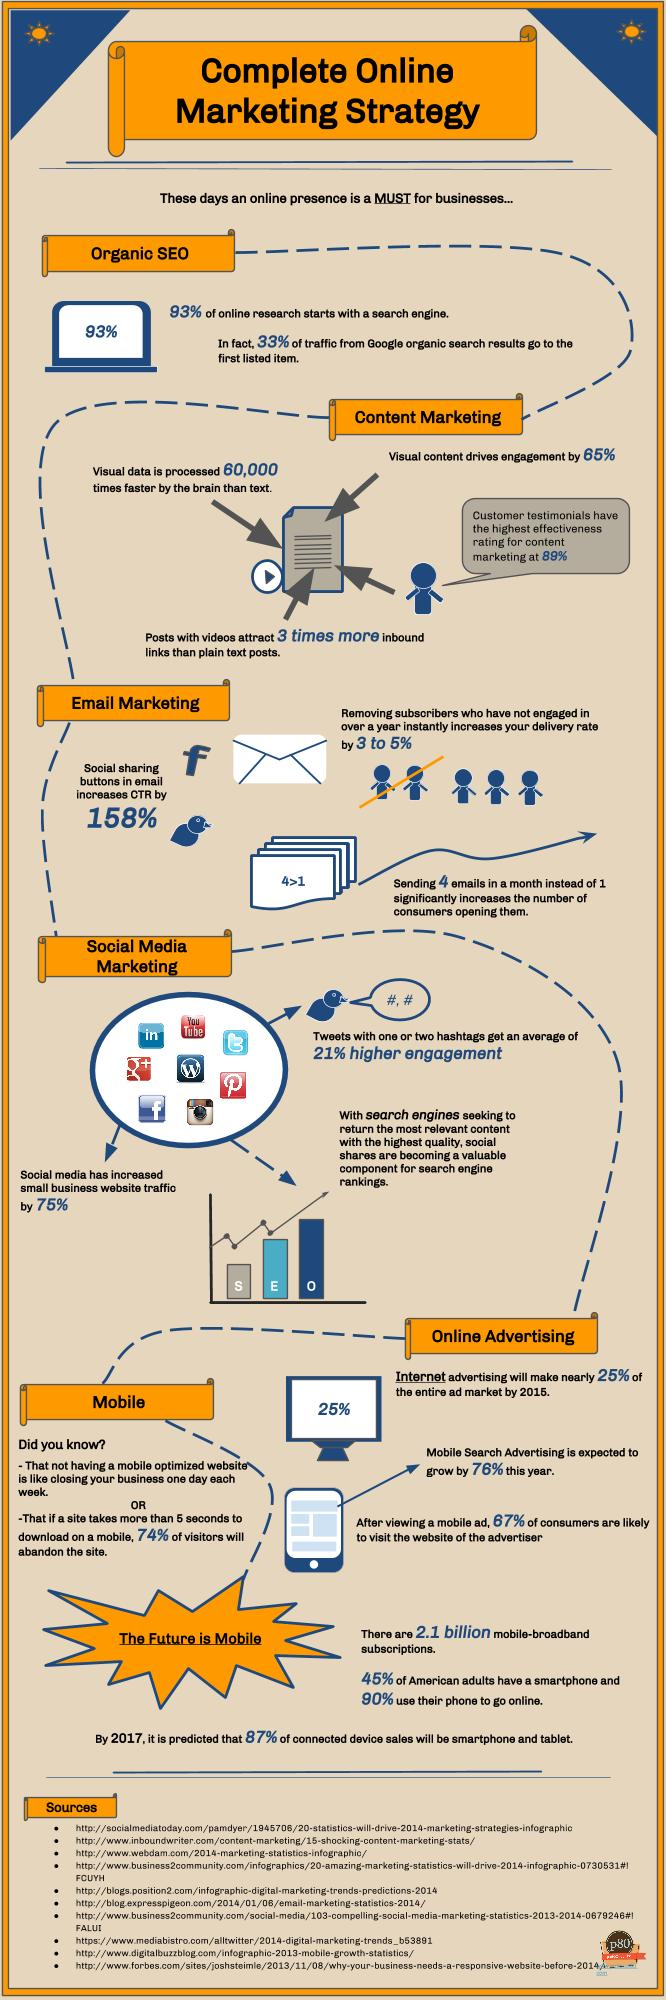 Complete-Online-Marketing-Strategy-Infographic-protocol80